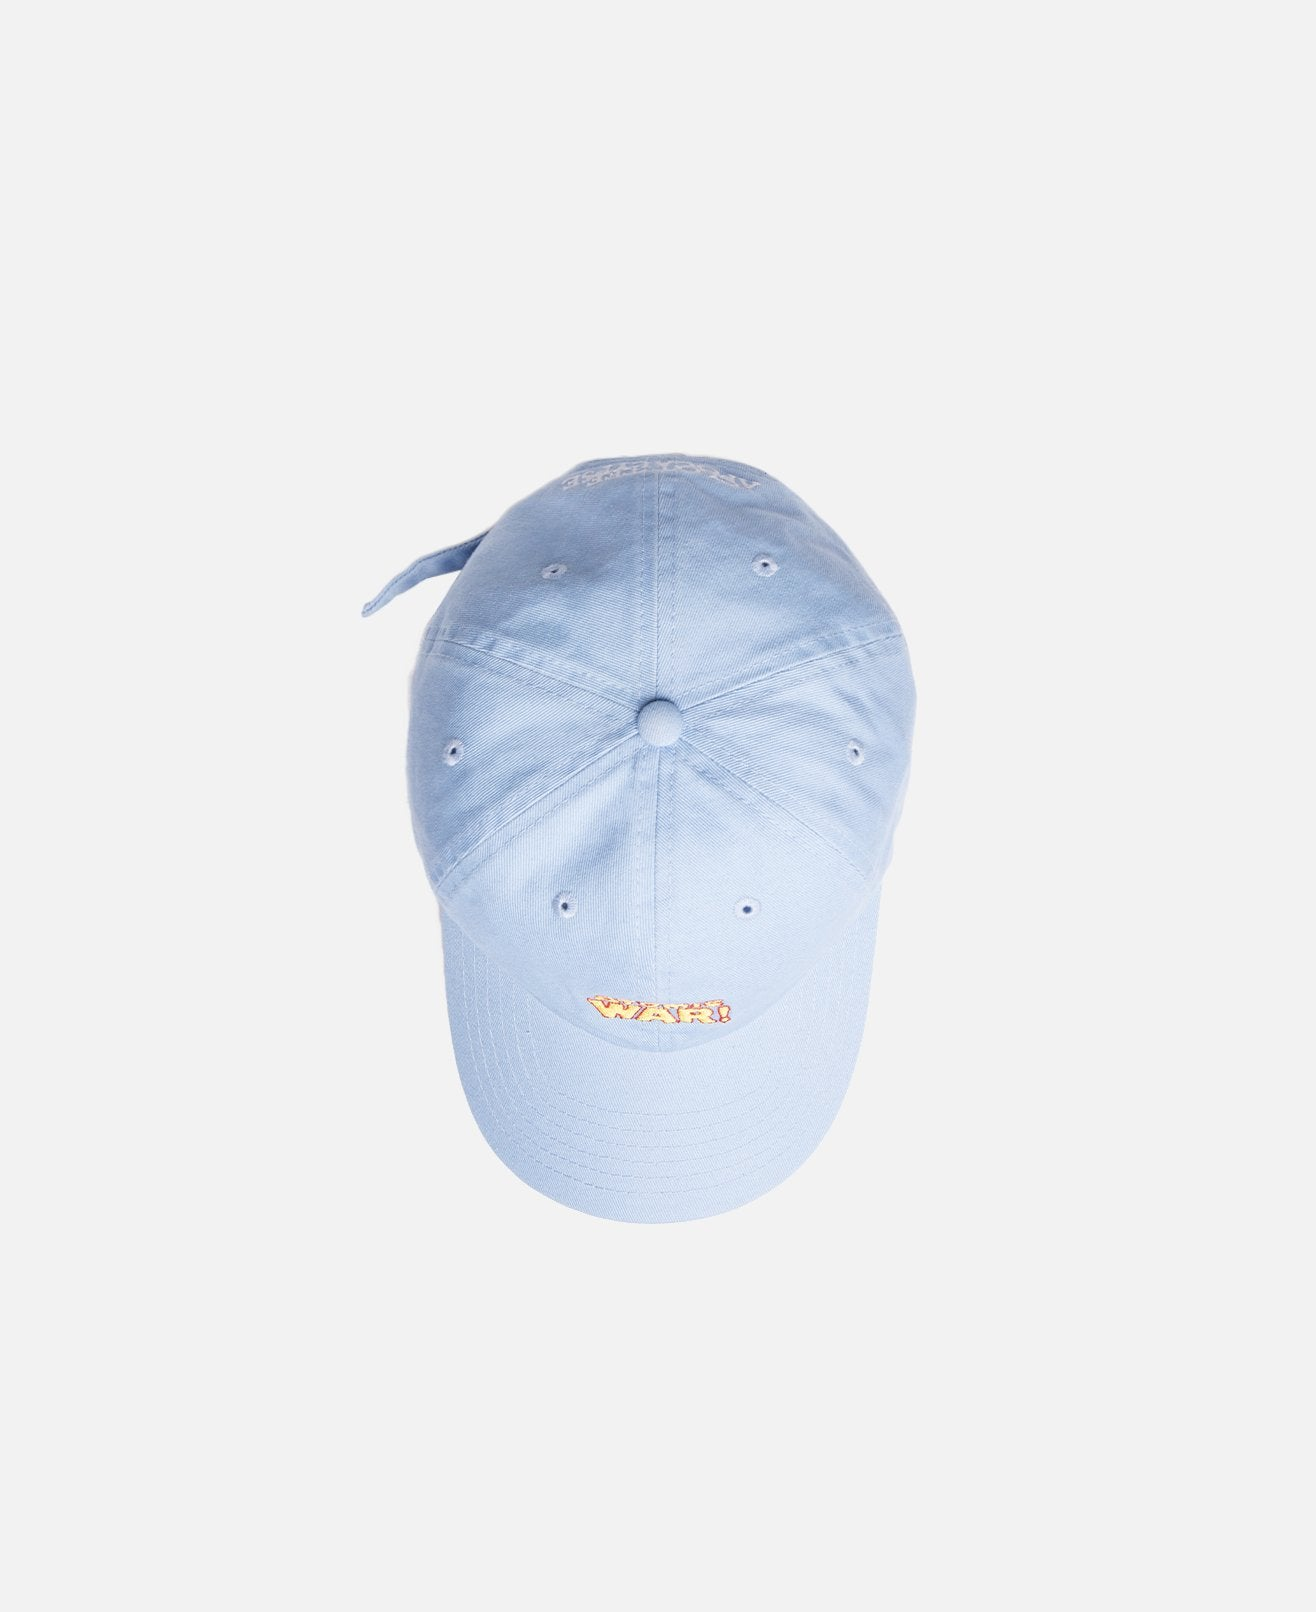 Atomic War Dad Cap